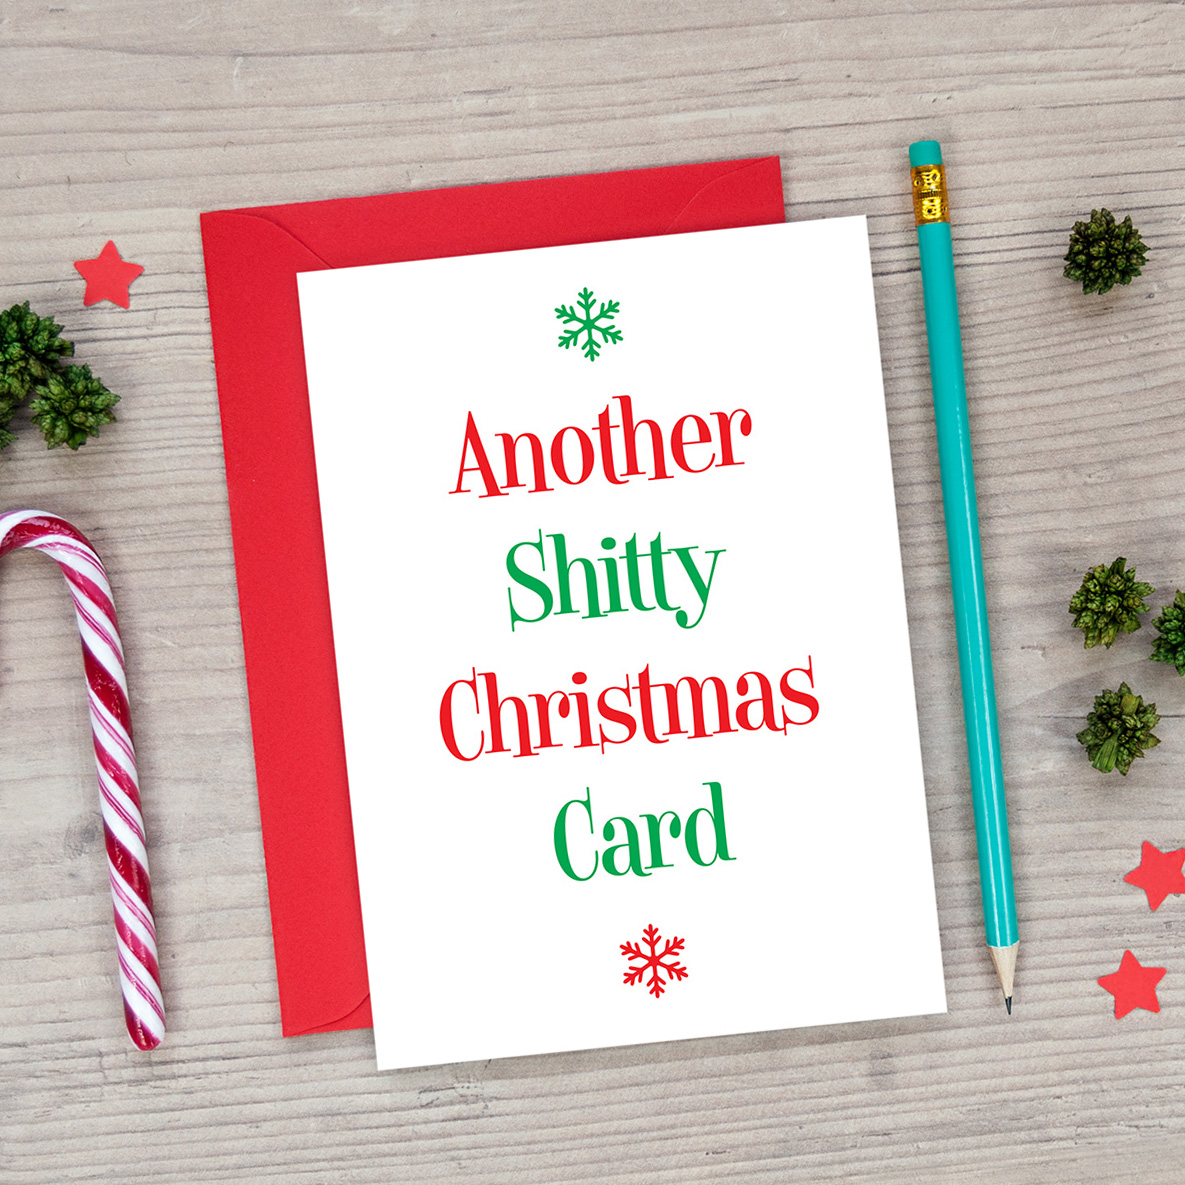 Funny Christmas Cards | WEDFEST